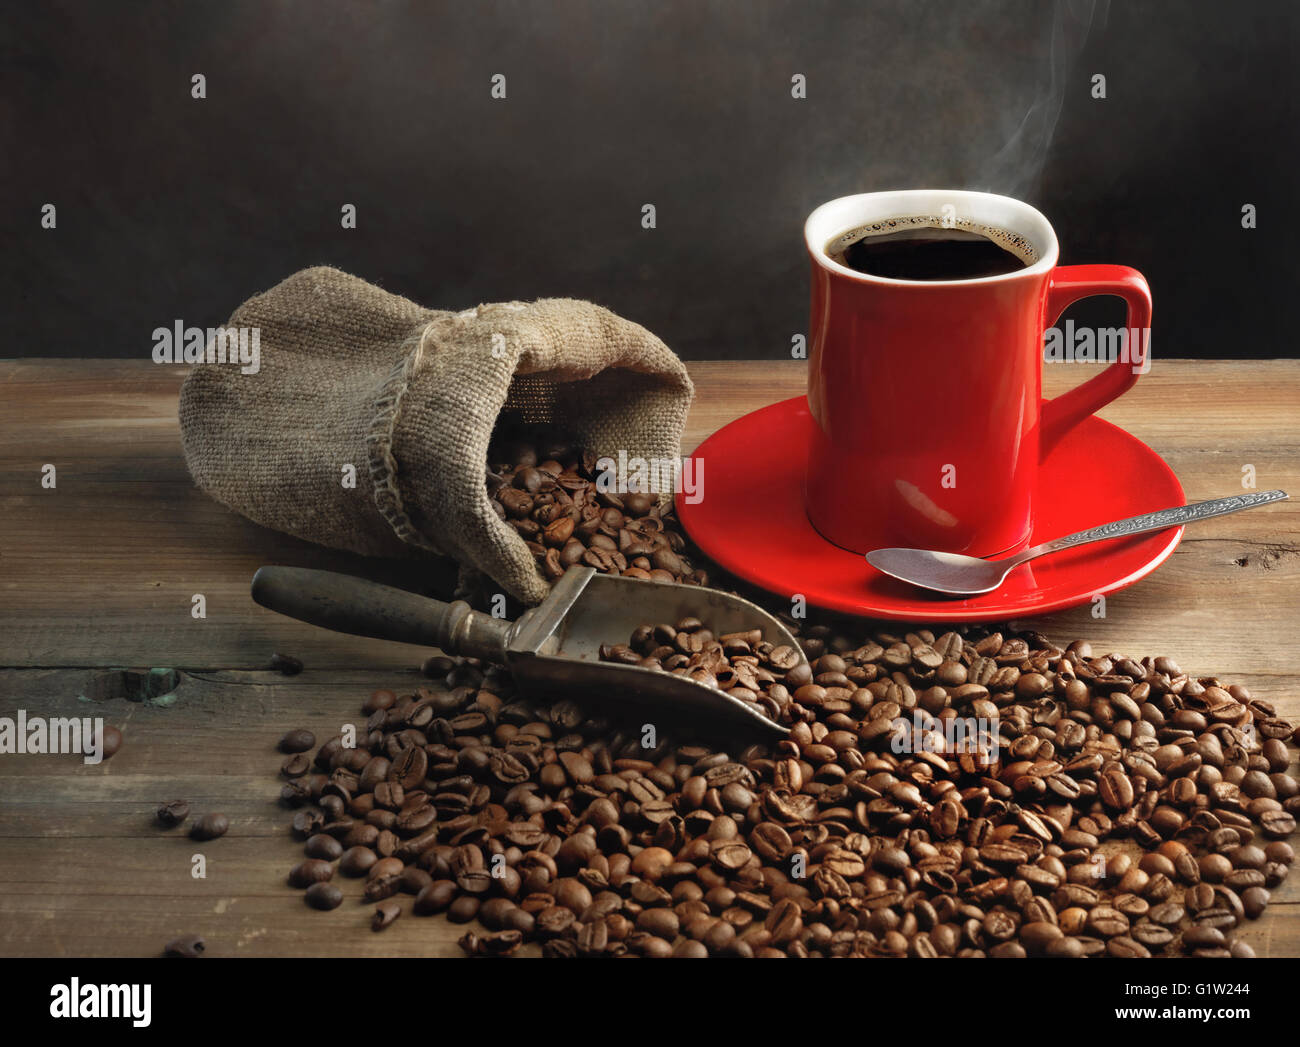 Coffee cup and coffee beans on wooden table - Stock Image